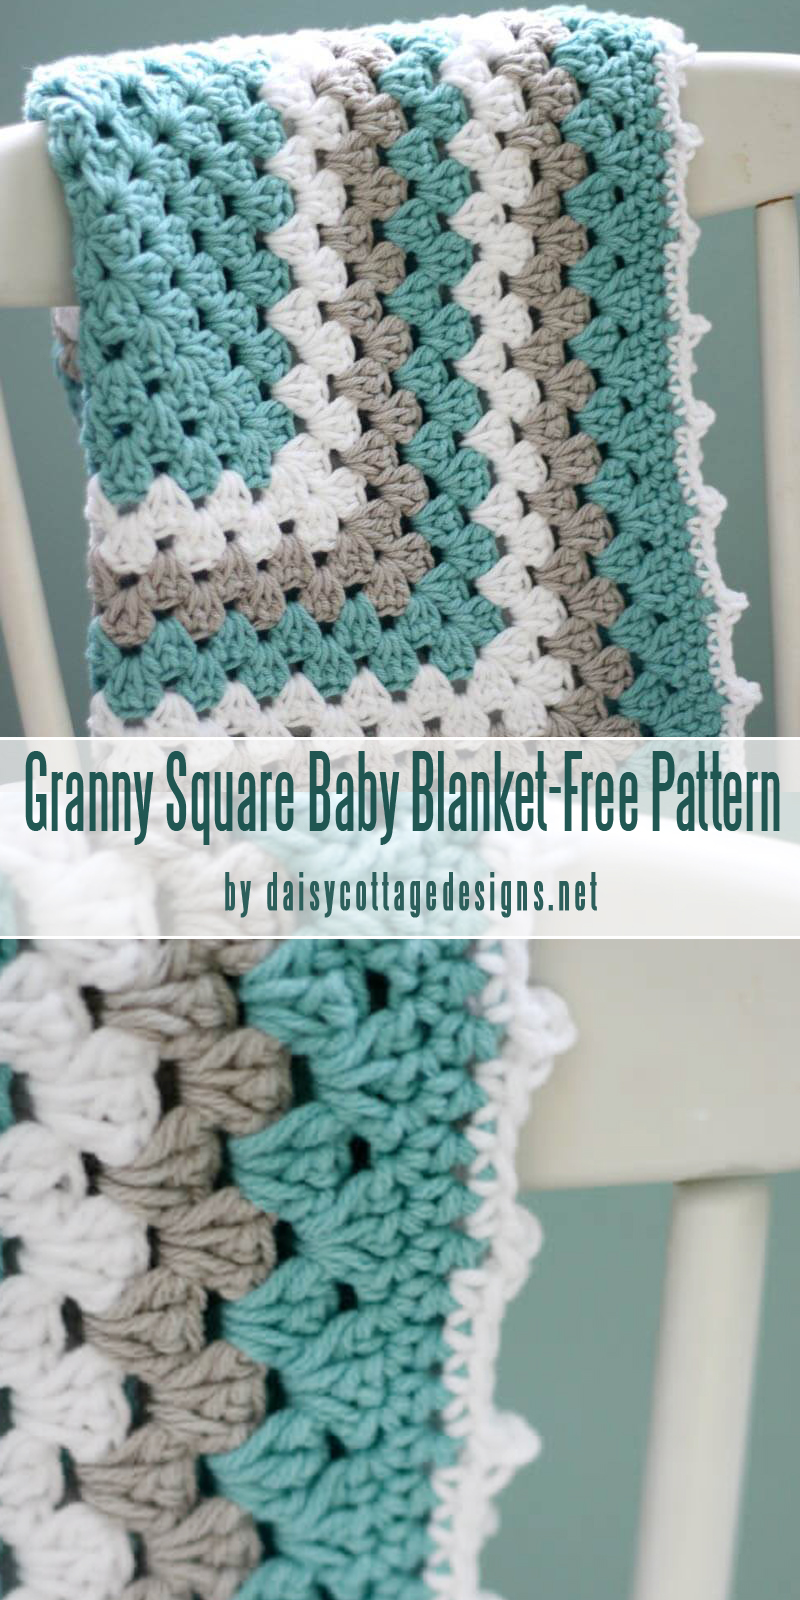 Free Crochet Pattern Granny Square Baby Blanket-best baby blankets for for beginners curated by craft-mart.com #crochetfreepattern #crochet4beginners #freecrochetbabyblanketpattern #easycrochetprojects